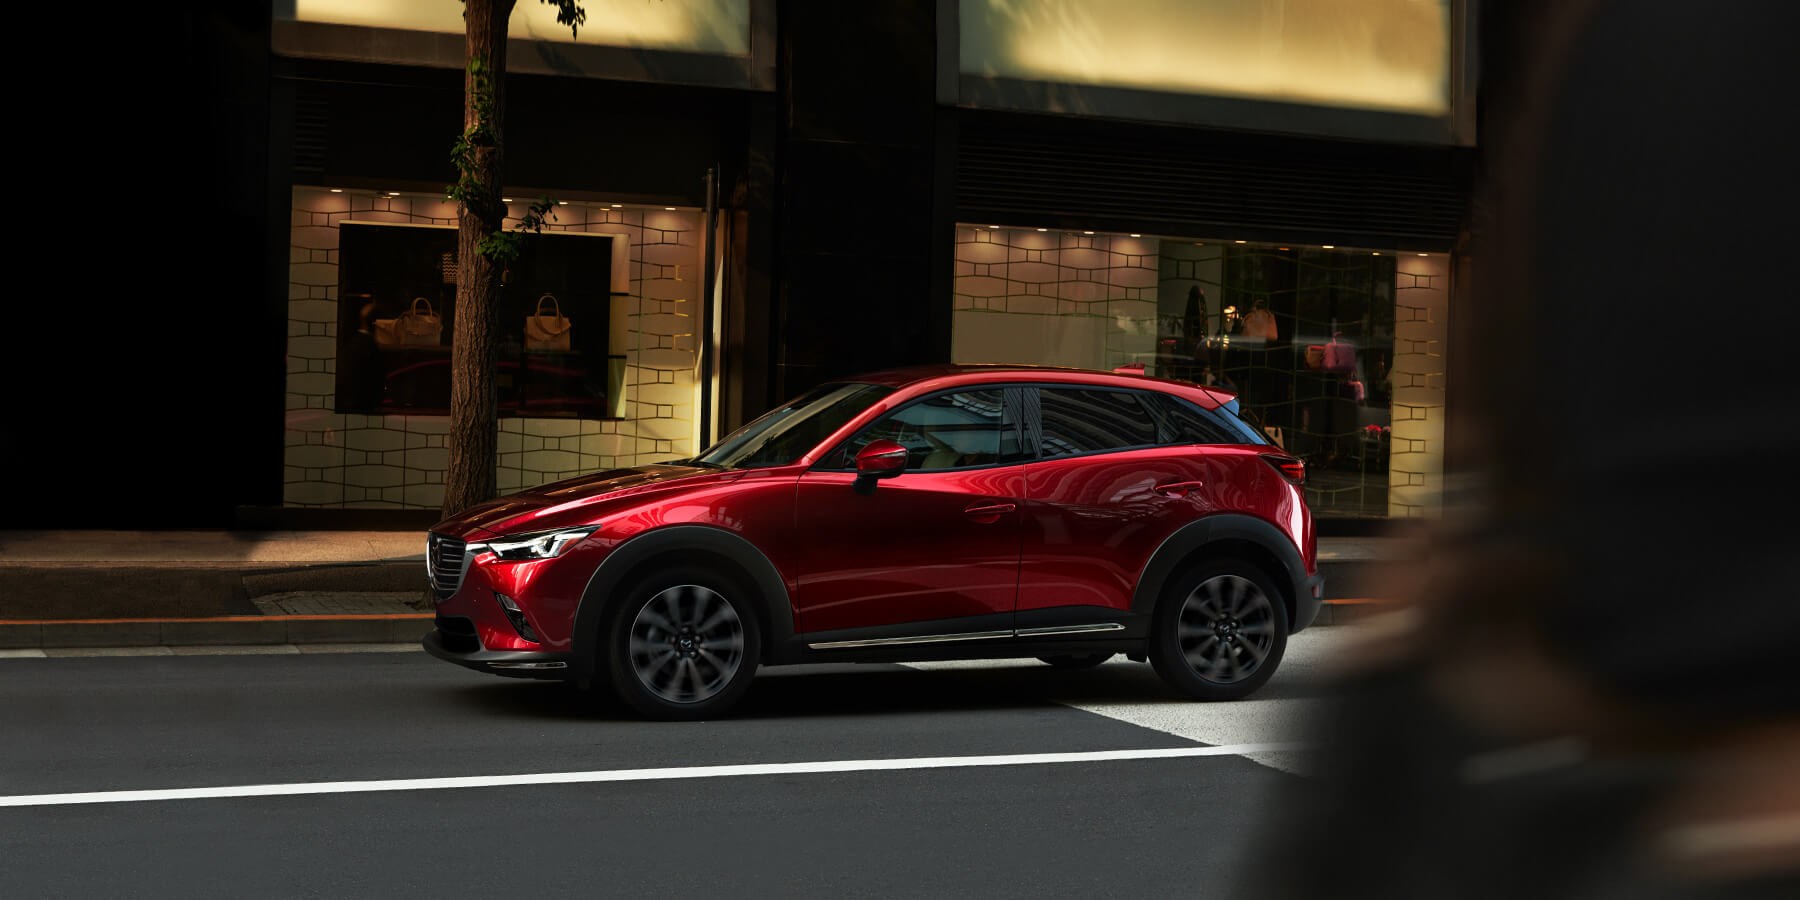 New Mazda CX-3 R 2.0L 2WD 6MT IPM